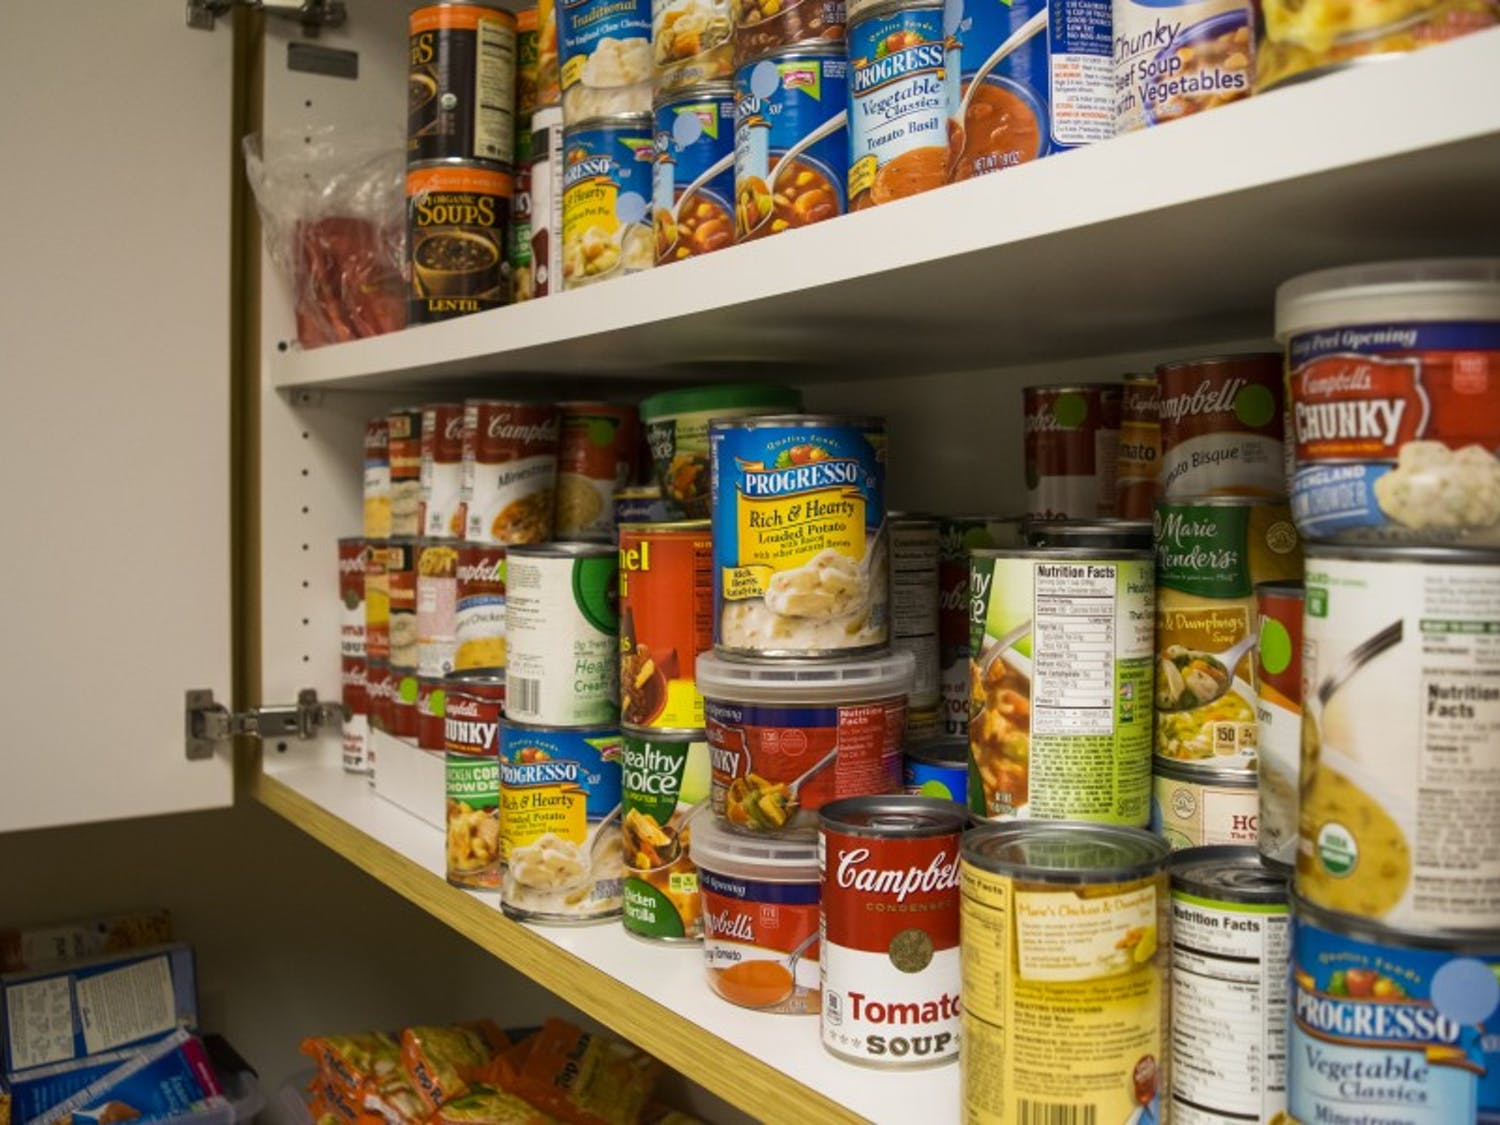 The Open Seat, a campus food pantry created in February 2016, serves students who may be unsure of where their next meal is coming from.